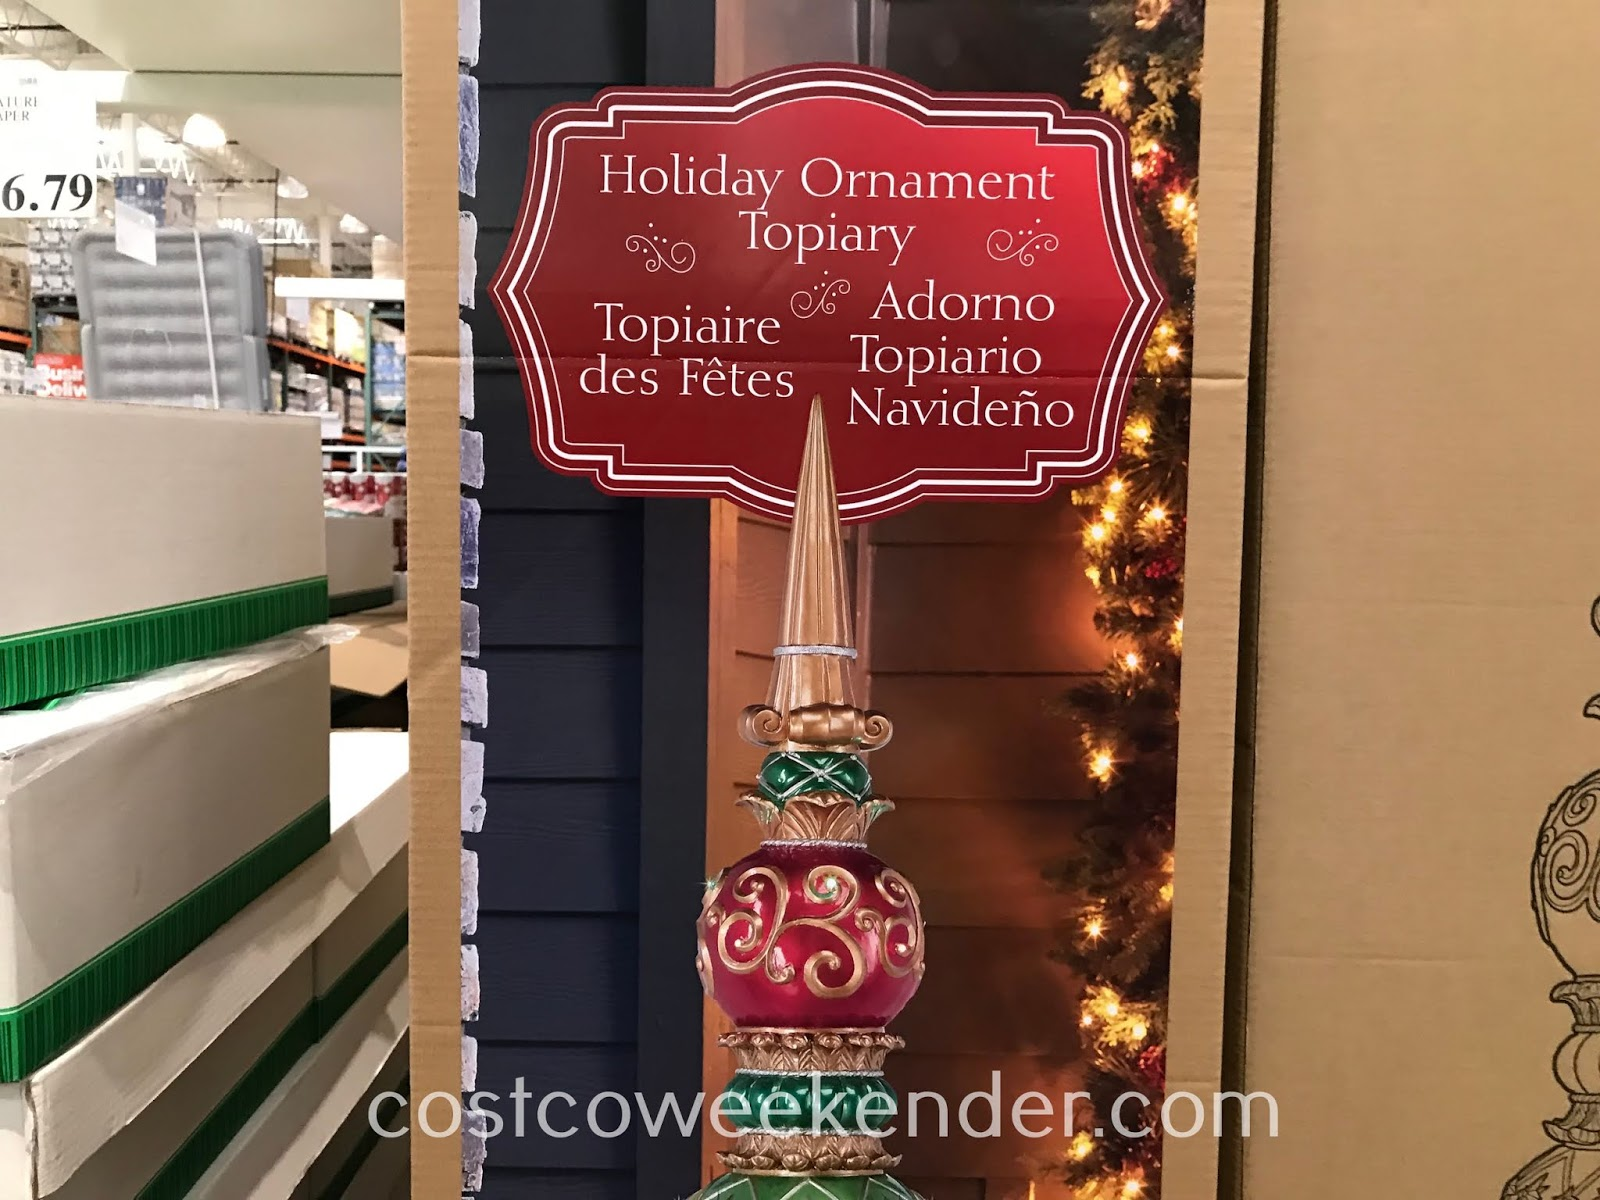 Costco 1900339 - Holiday Ornament Topiary: great for the holidays